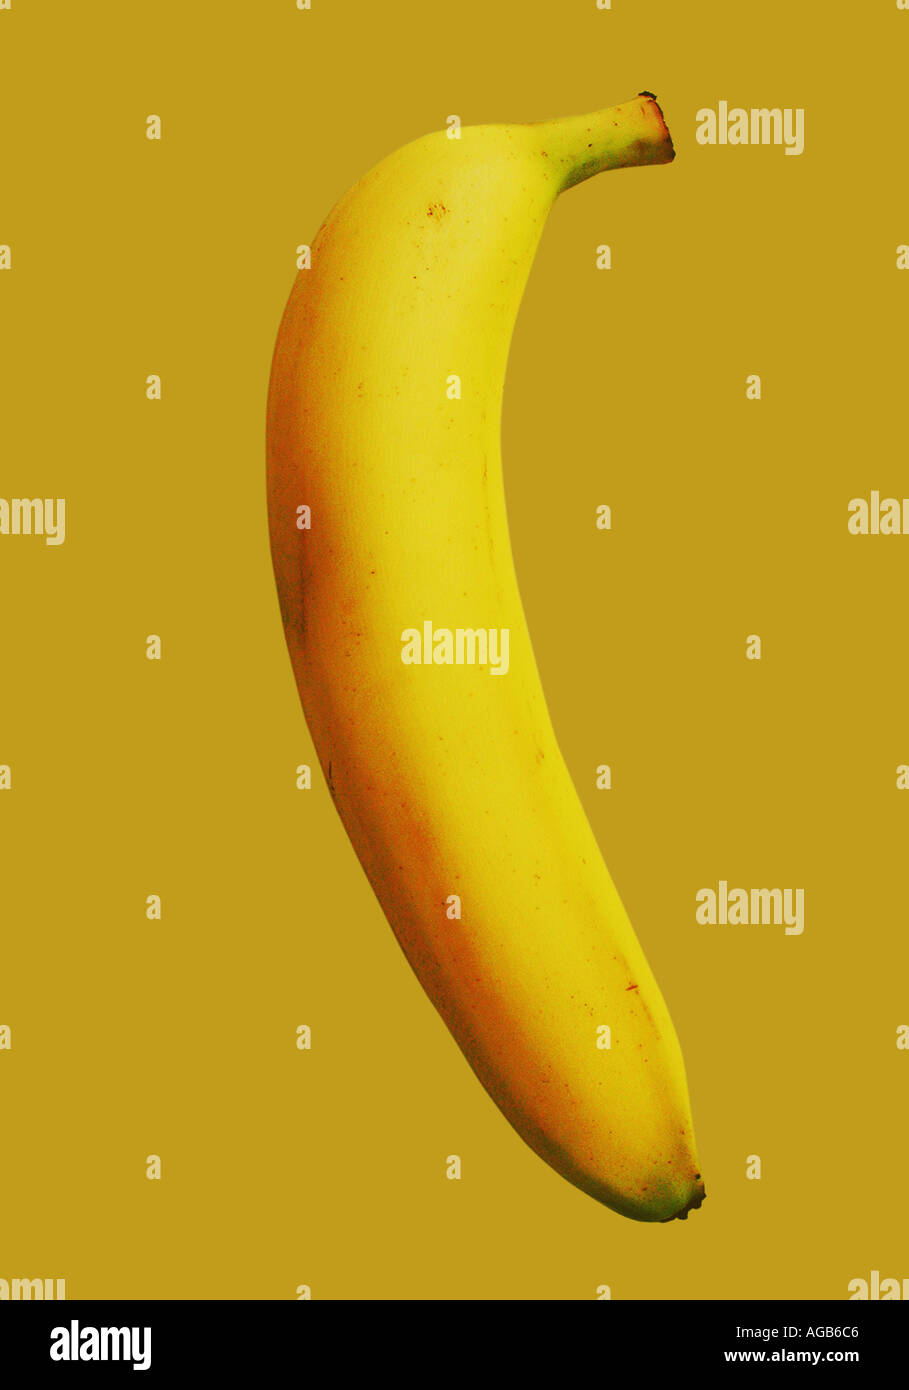 Contemporary singular banana image - Stock Image